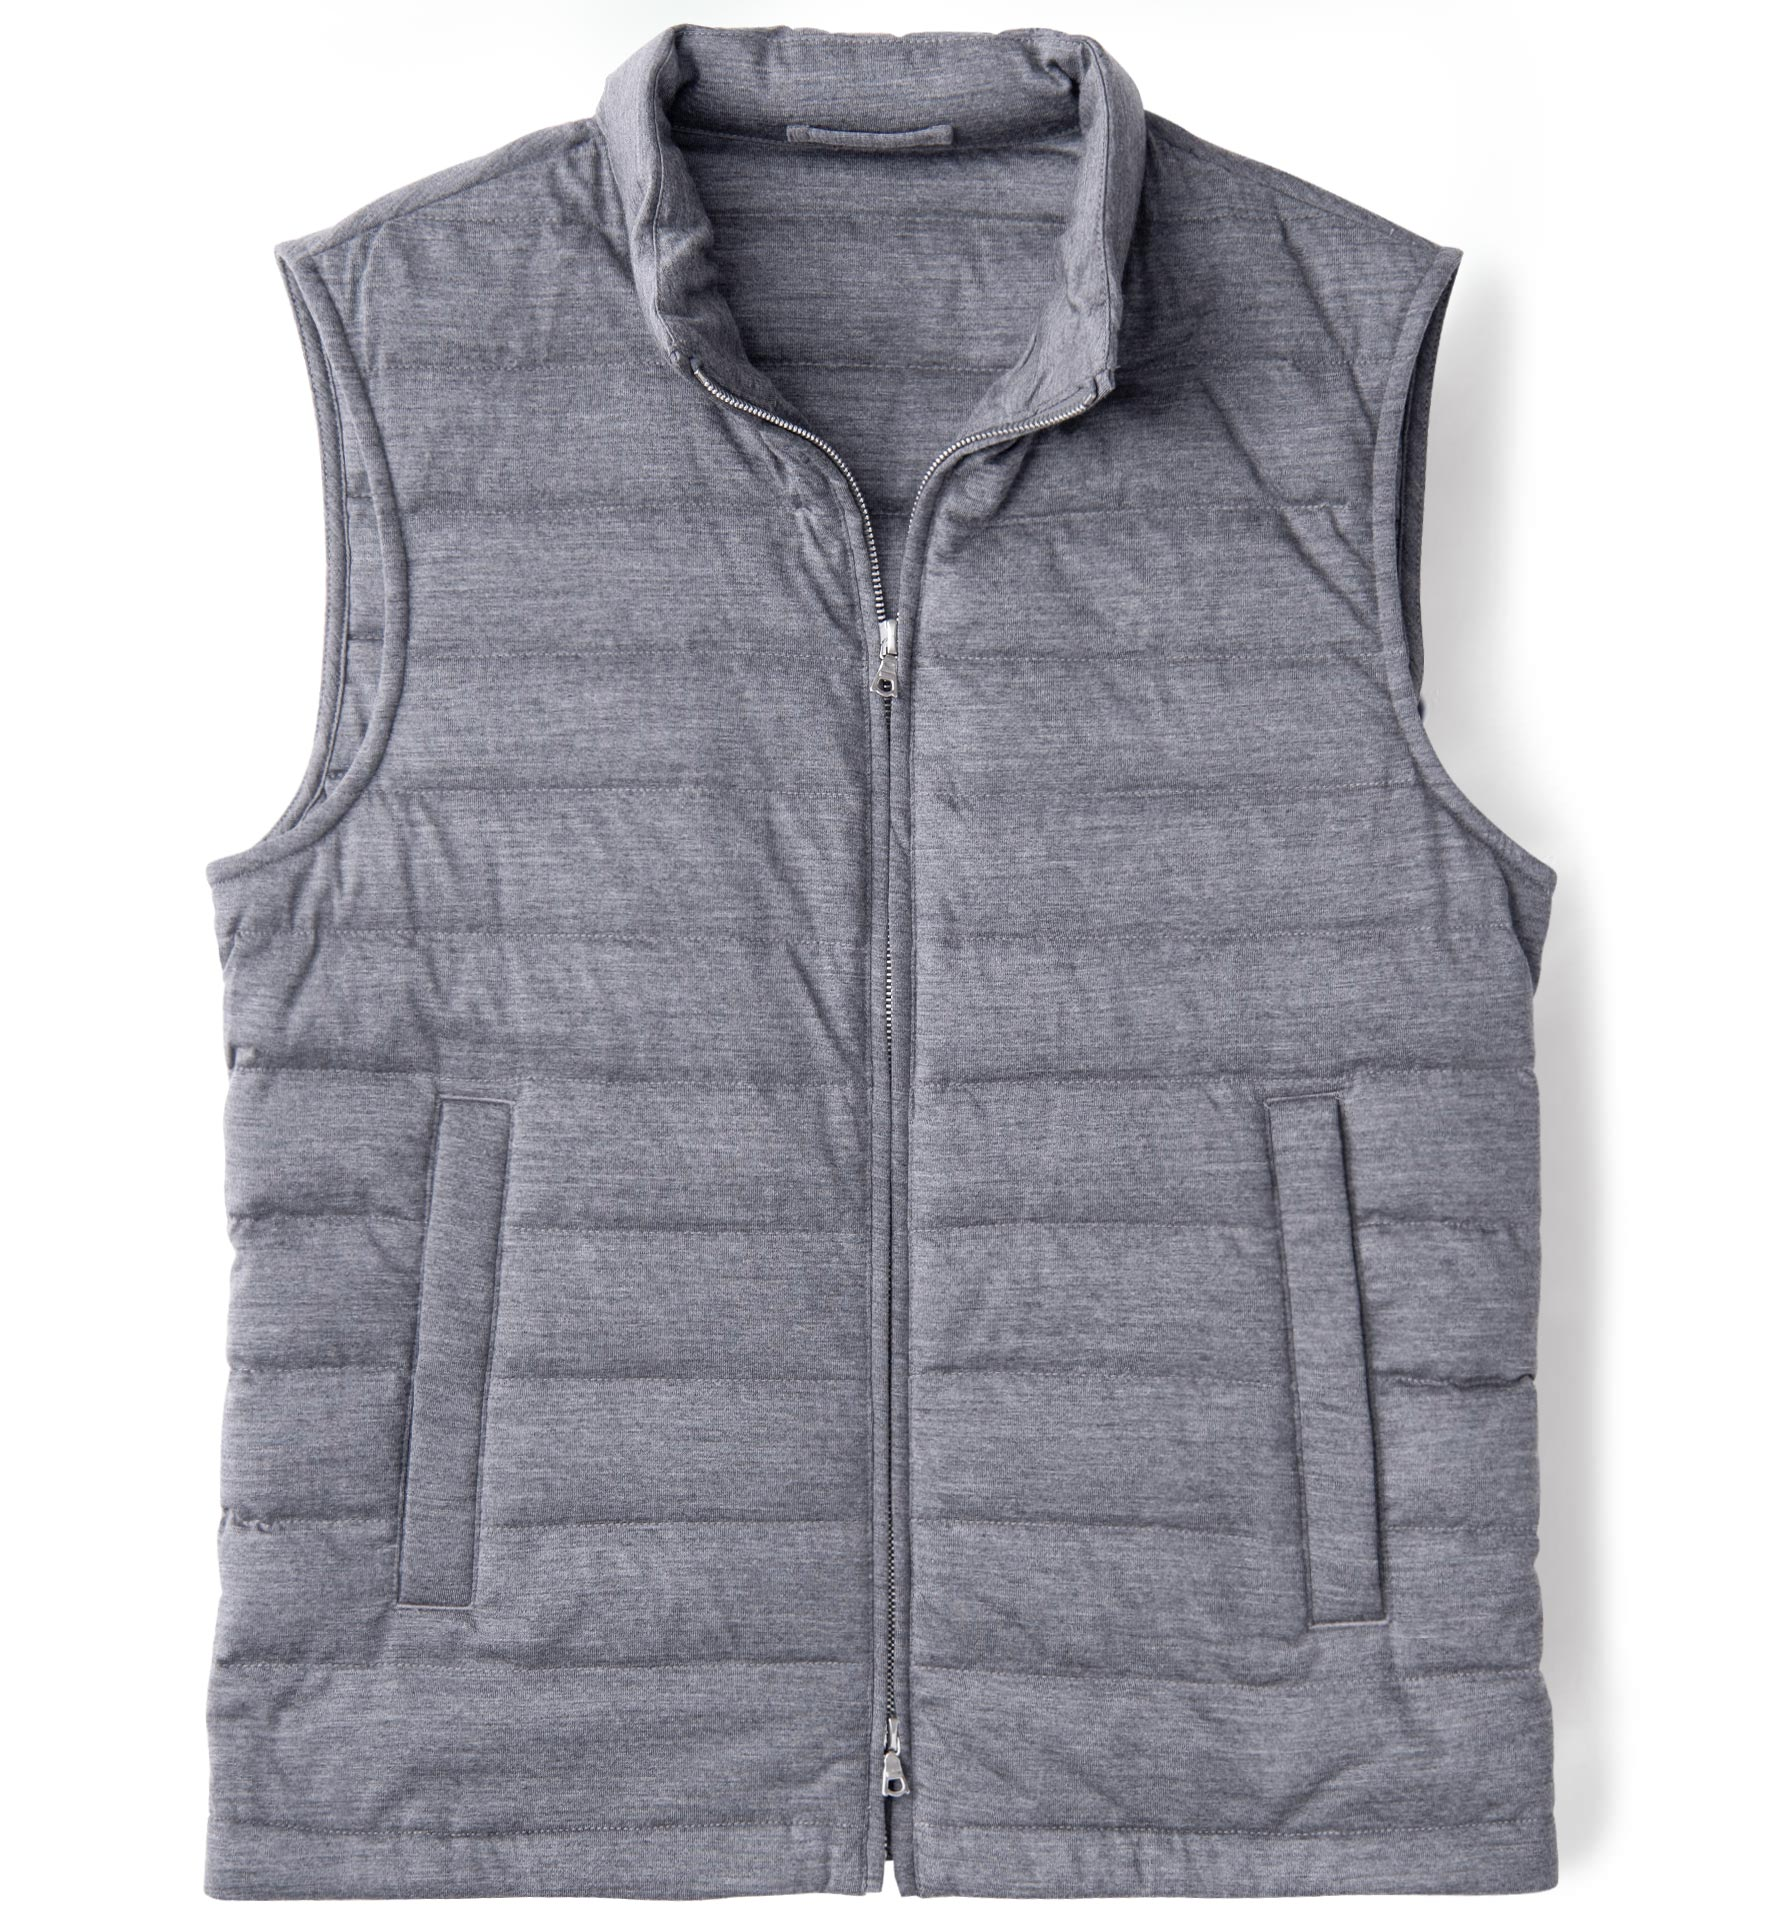 Zoom Image of Brera Grey Knit Merino Wool Zip Vest